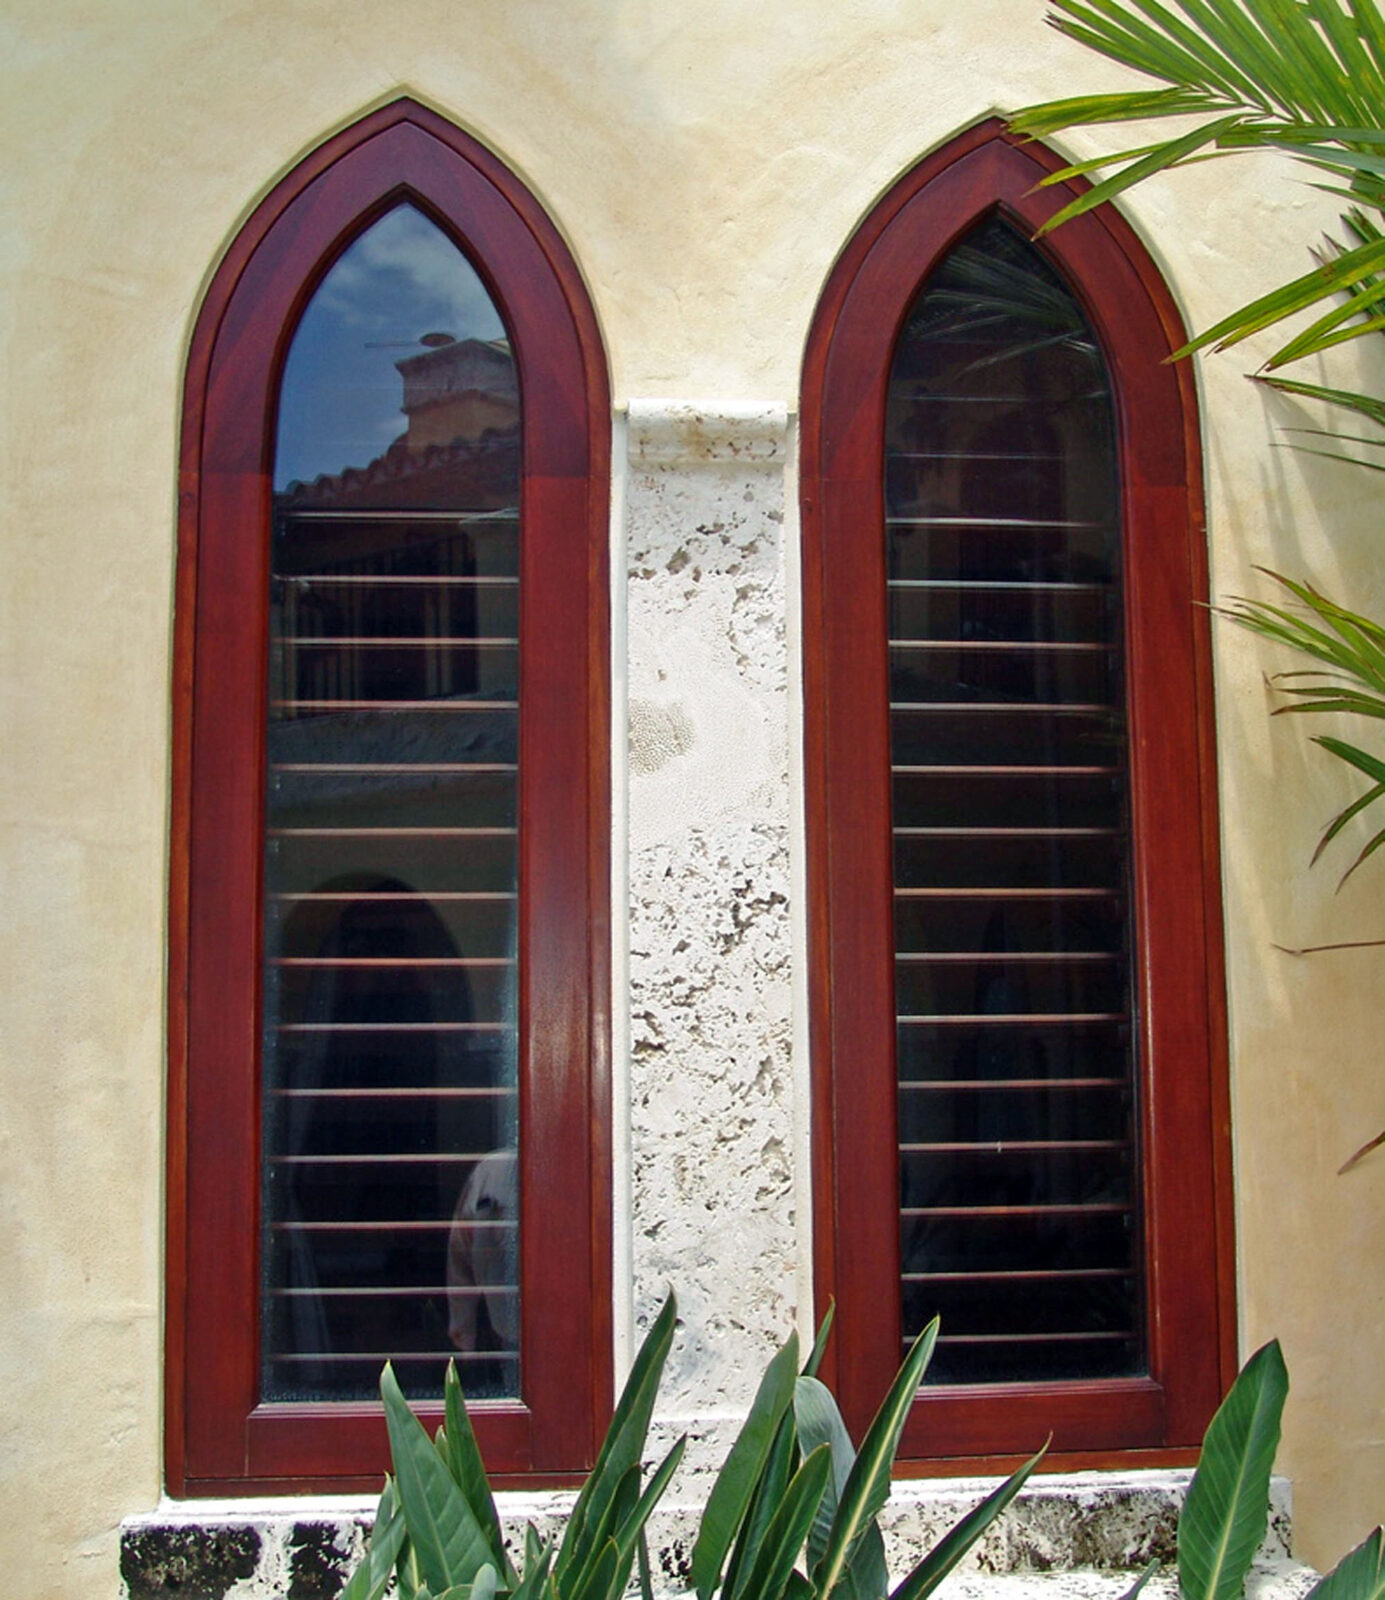 SUNSET ISLAND FIXED ARABESQUE WINDOWS